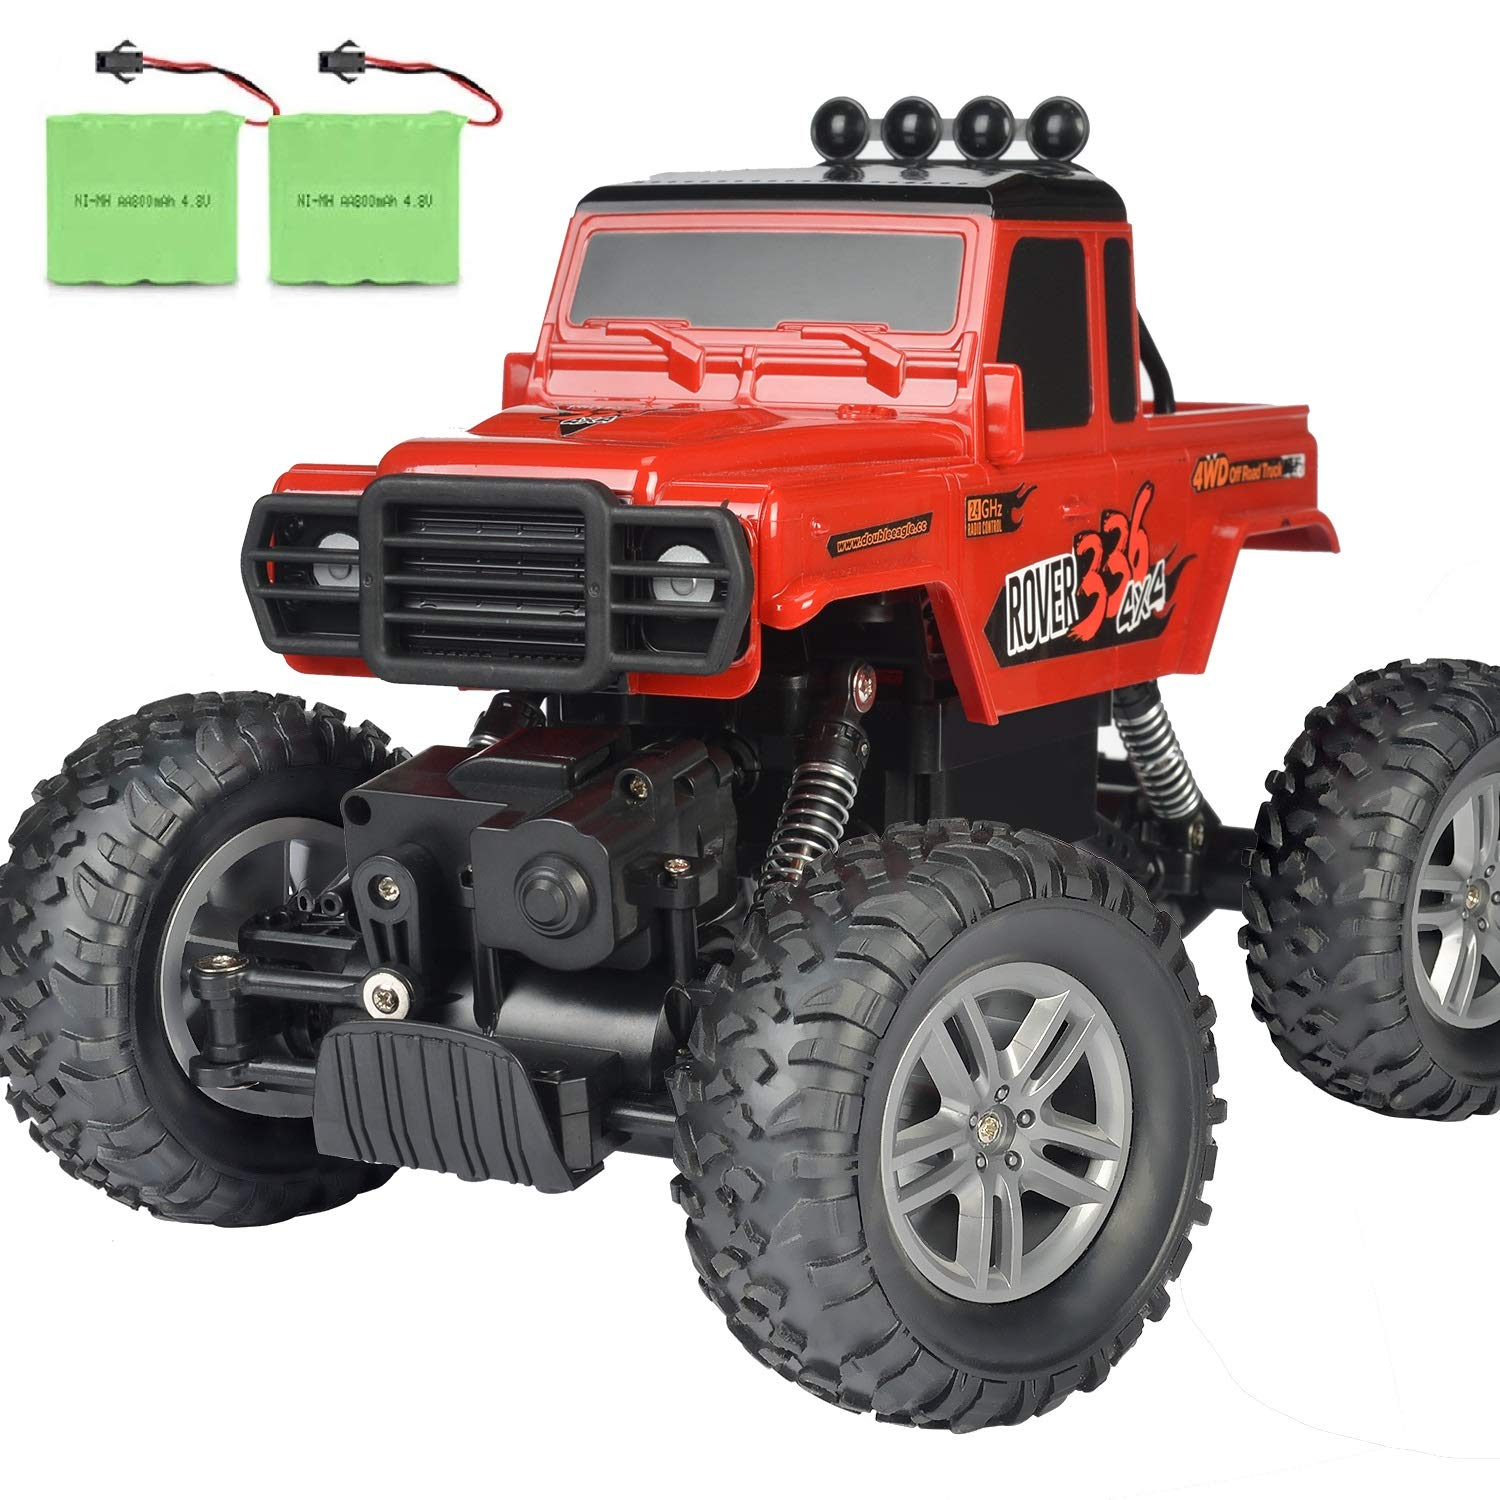 Double E RC Car Off Road Remote Control Car DIY Sitcker 2 Batteries Monster Trucks for Boys 2.4Ghz Climbing RC Crawler